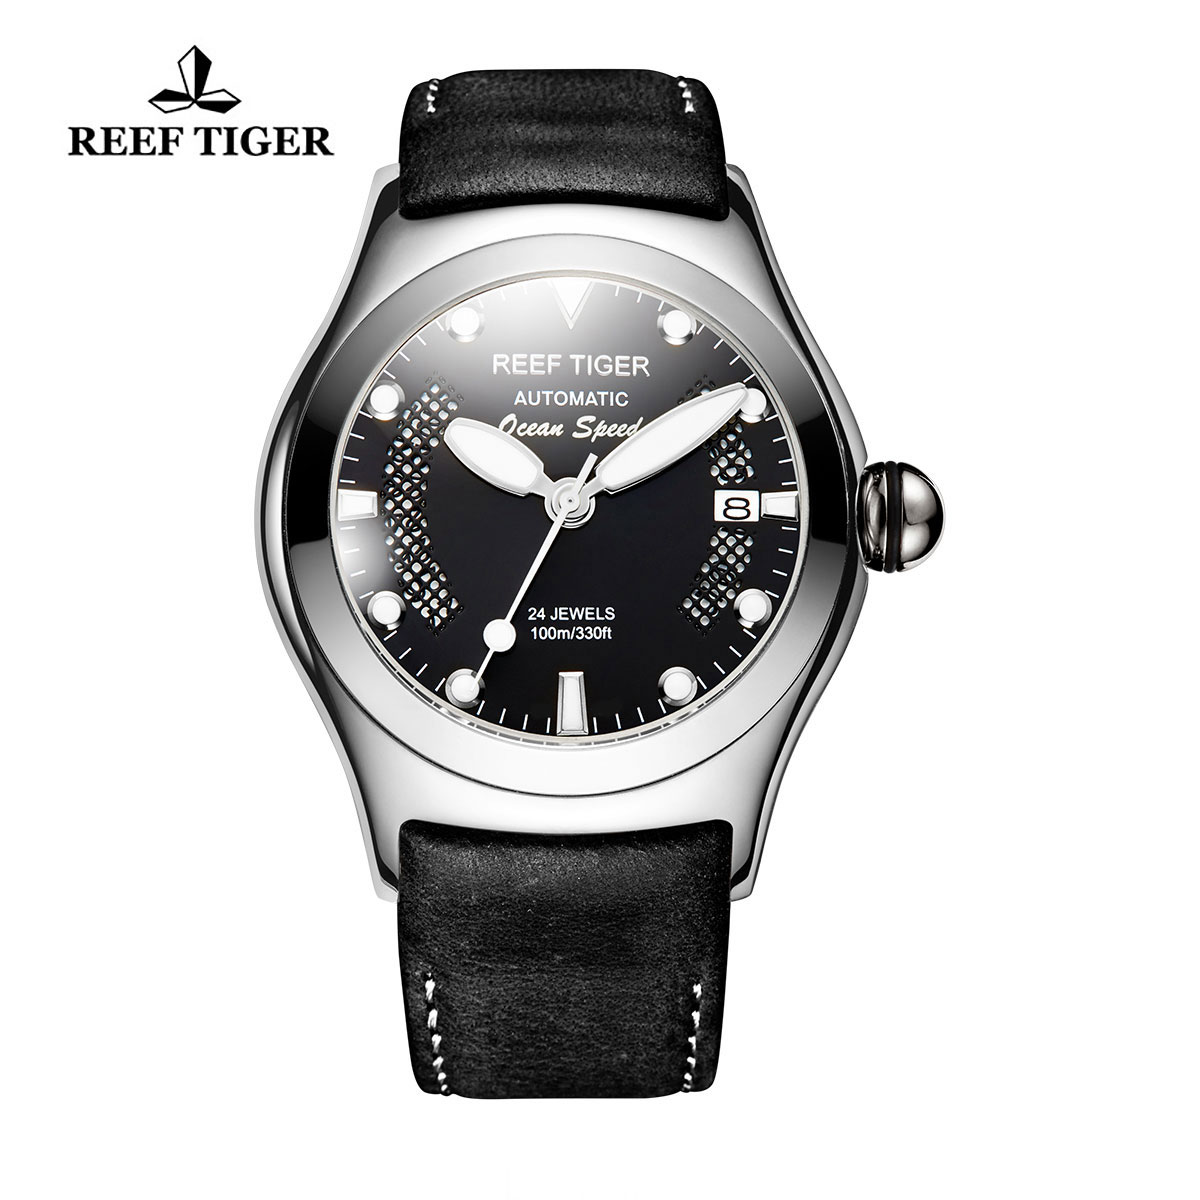 Reef Tiger Ocean Speed Sport Watches Automatic Steel Case Leather Strap Black Dial Watch RGA704-YBBW